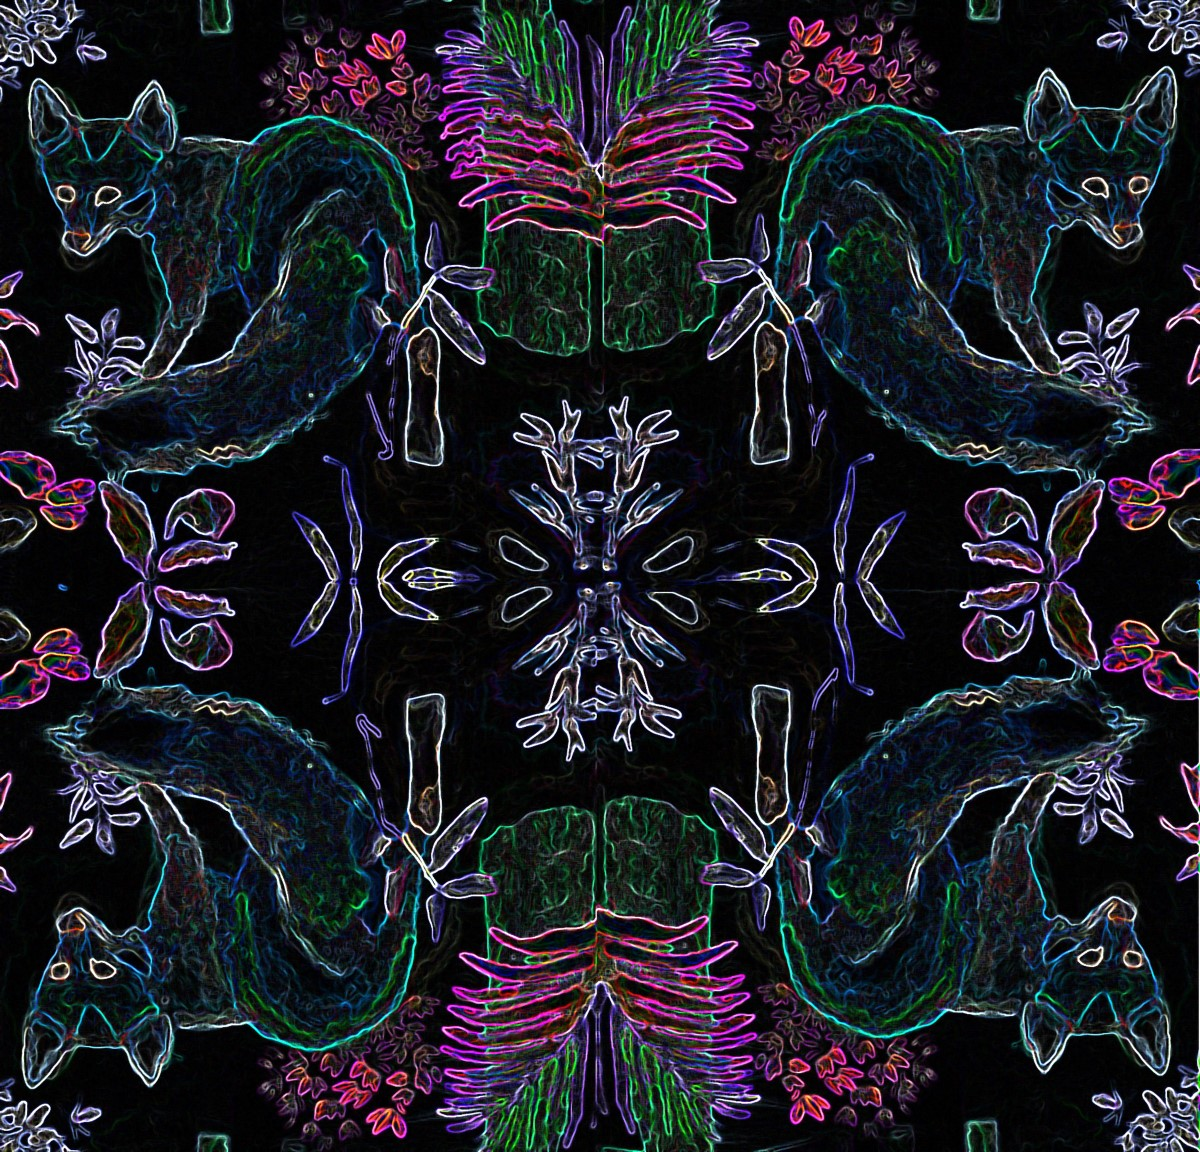 fox neon pattern forest night black blue fuschia textile design interior dwell houzz elle decor architecture furniture